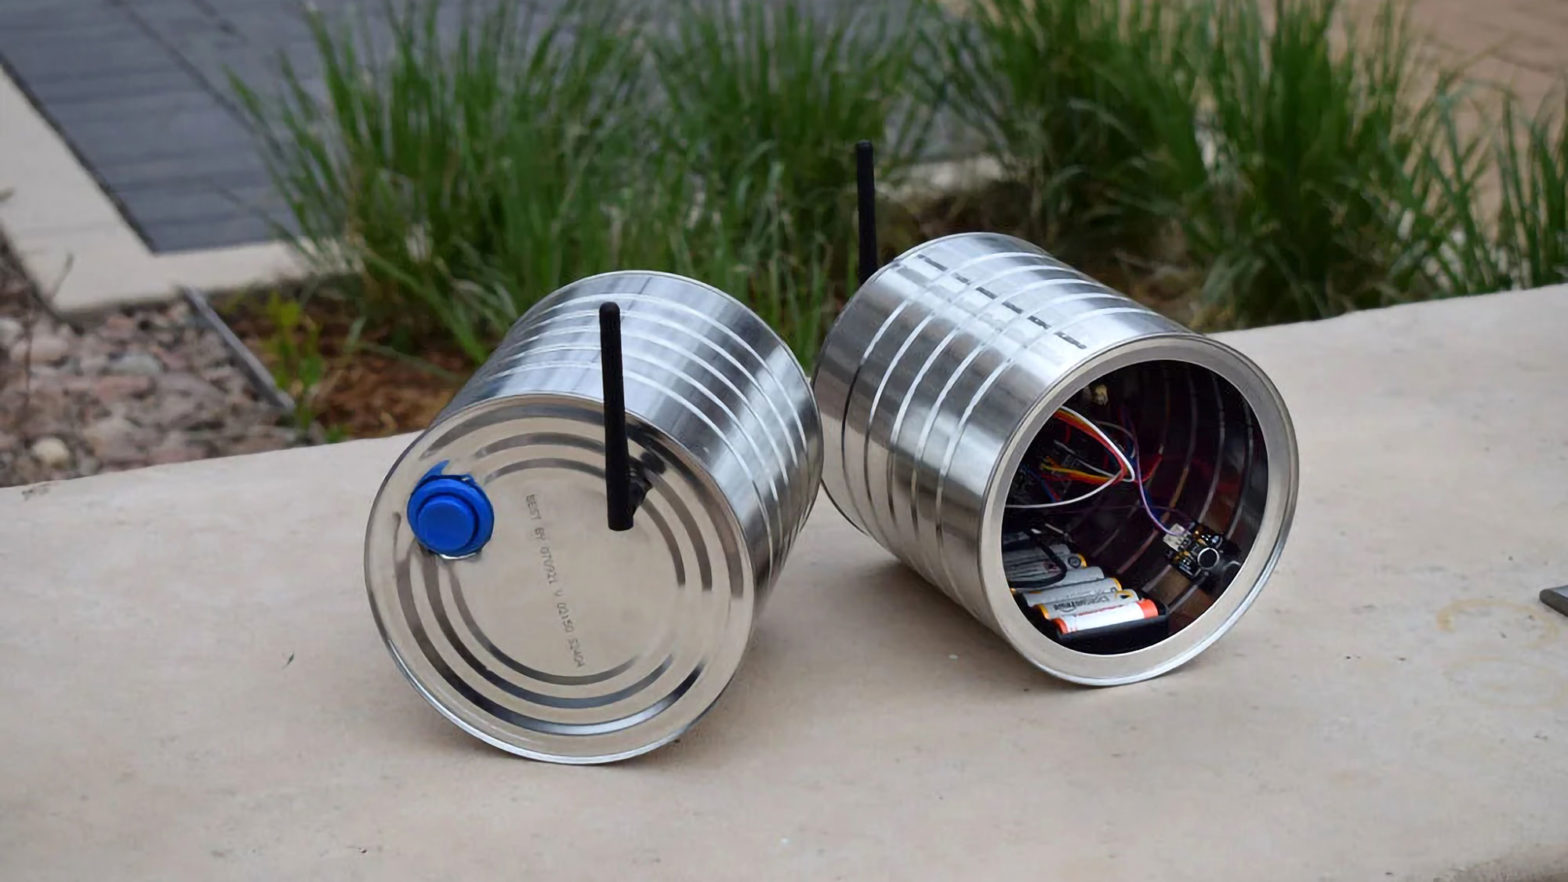 DIY Wireless Tin Can Telephone